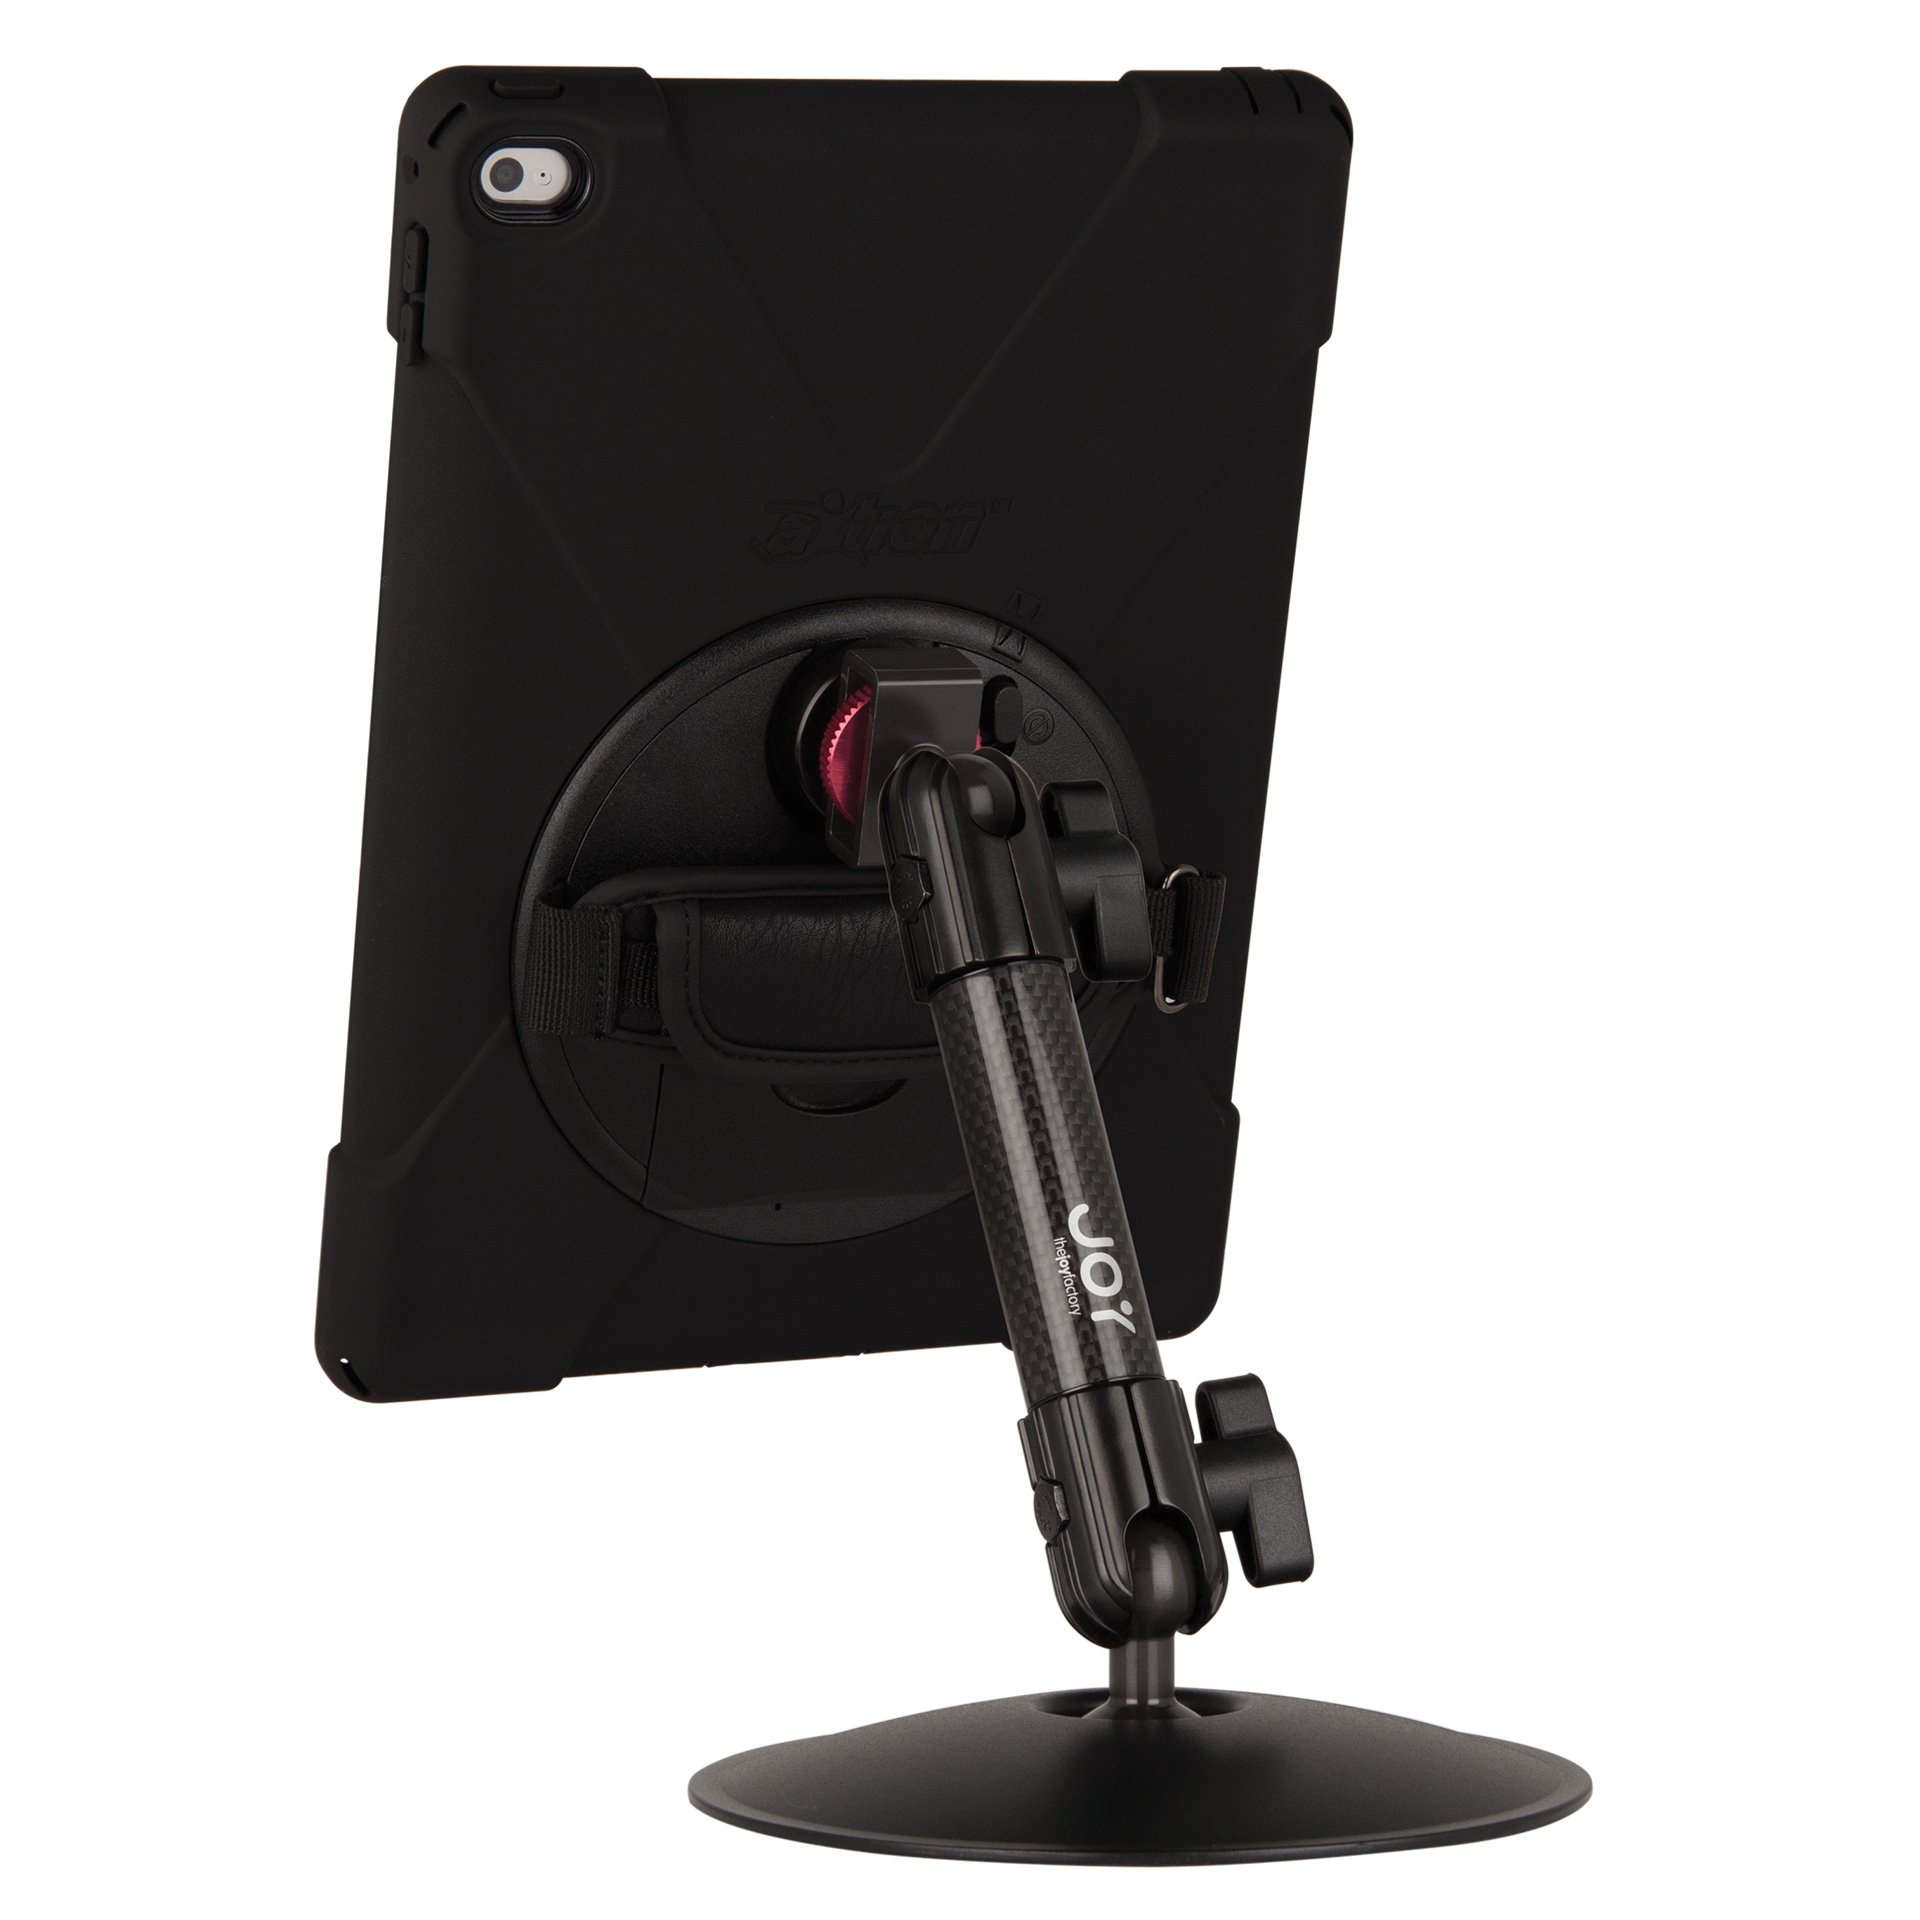 The Joy Factory MagConnect Carbon Fiber Desk Stand Mount with aXtion Bold MP Water-Resistant Rugged Shockproof Case for iPad Air 2, Built-In Screen Protector, Hand Strap, Kickstand (MWA311MP)